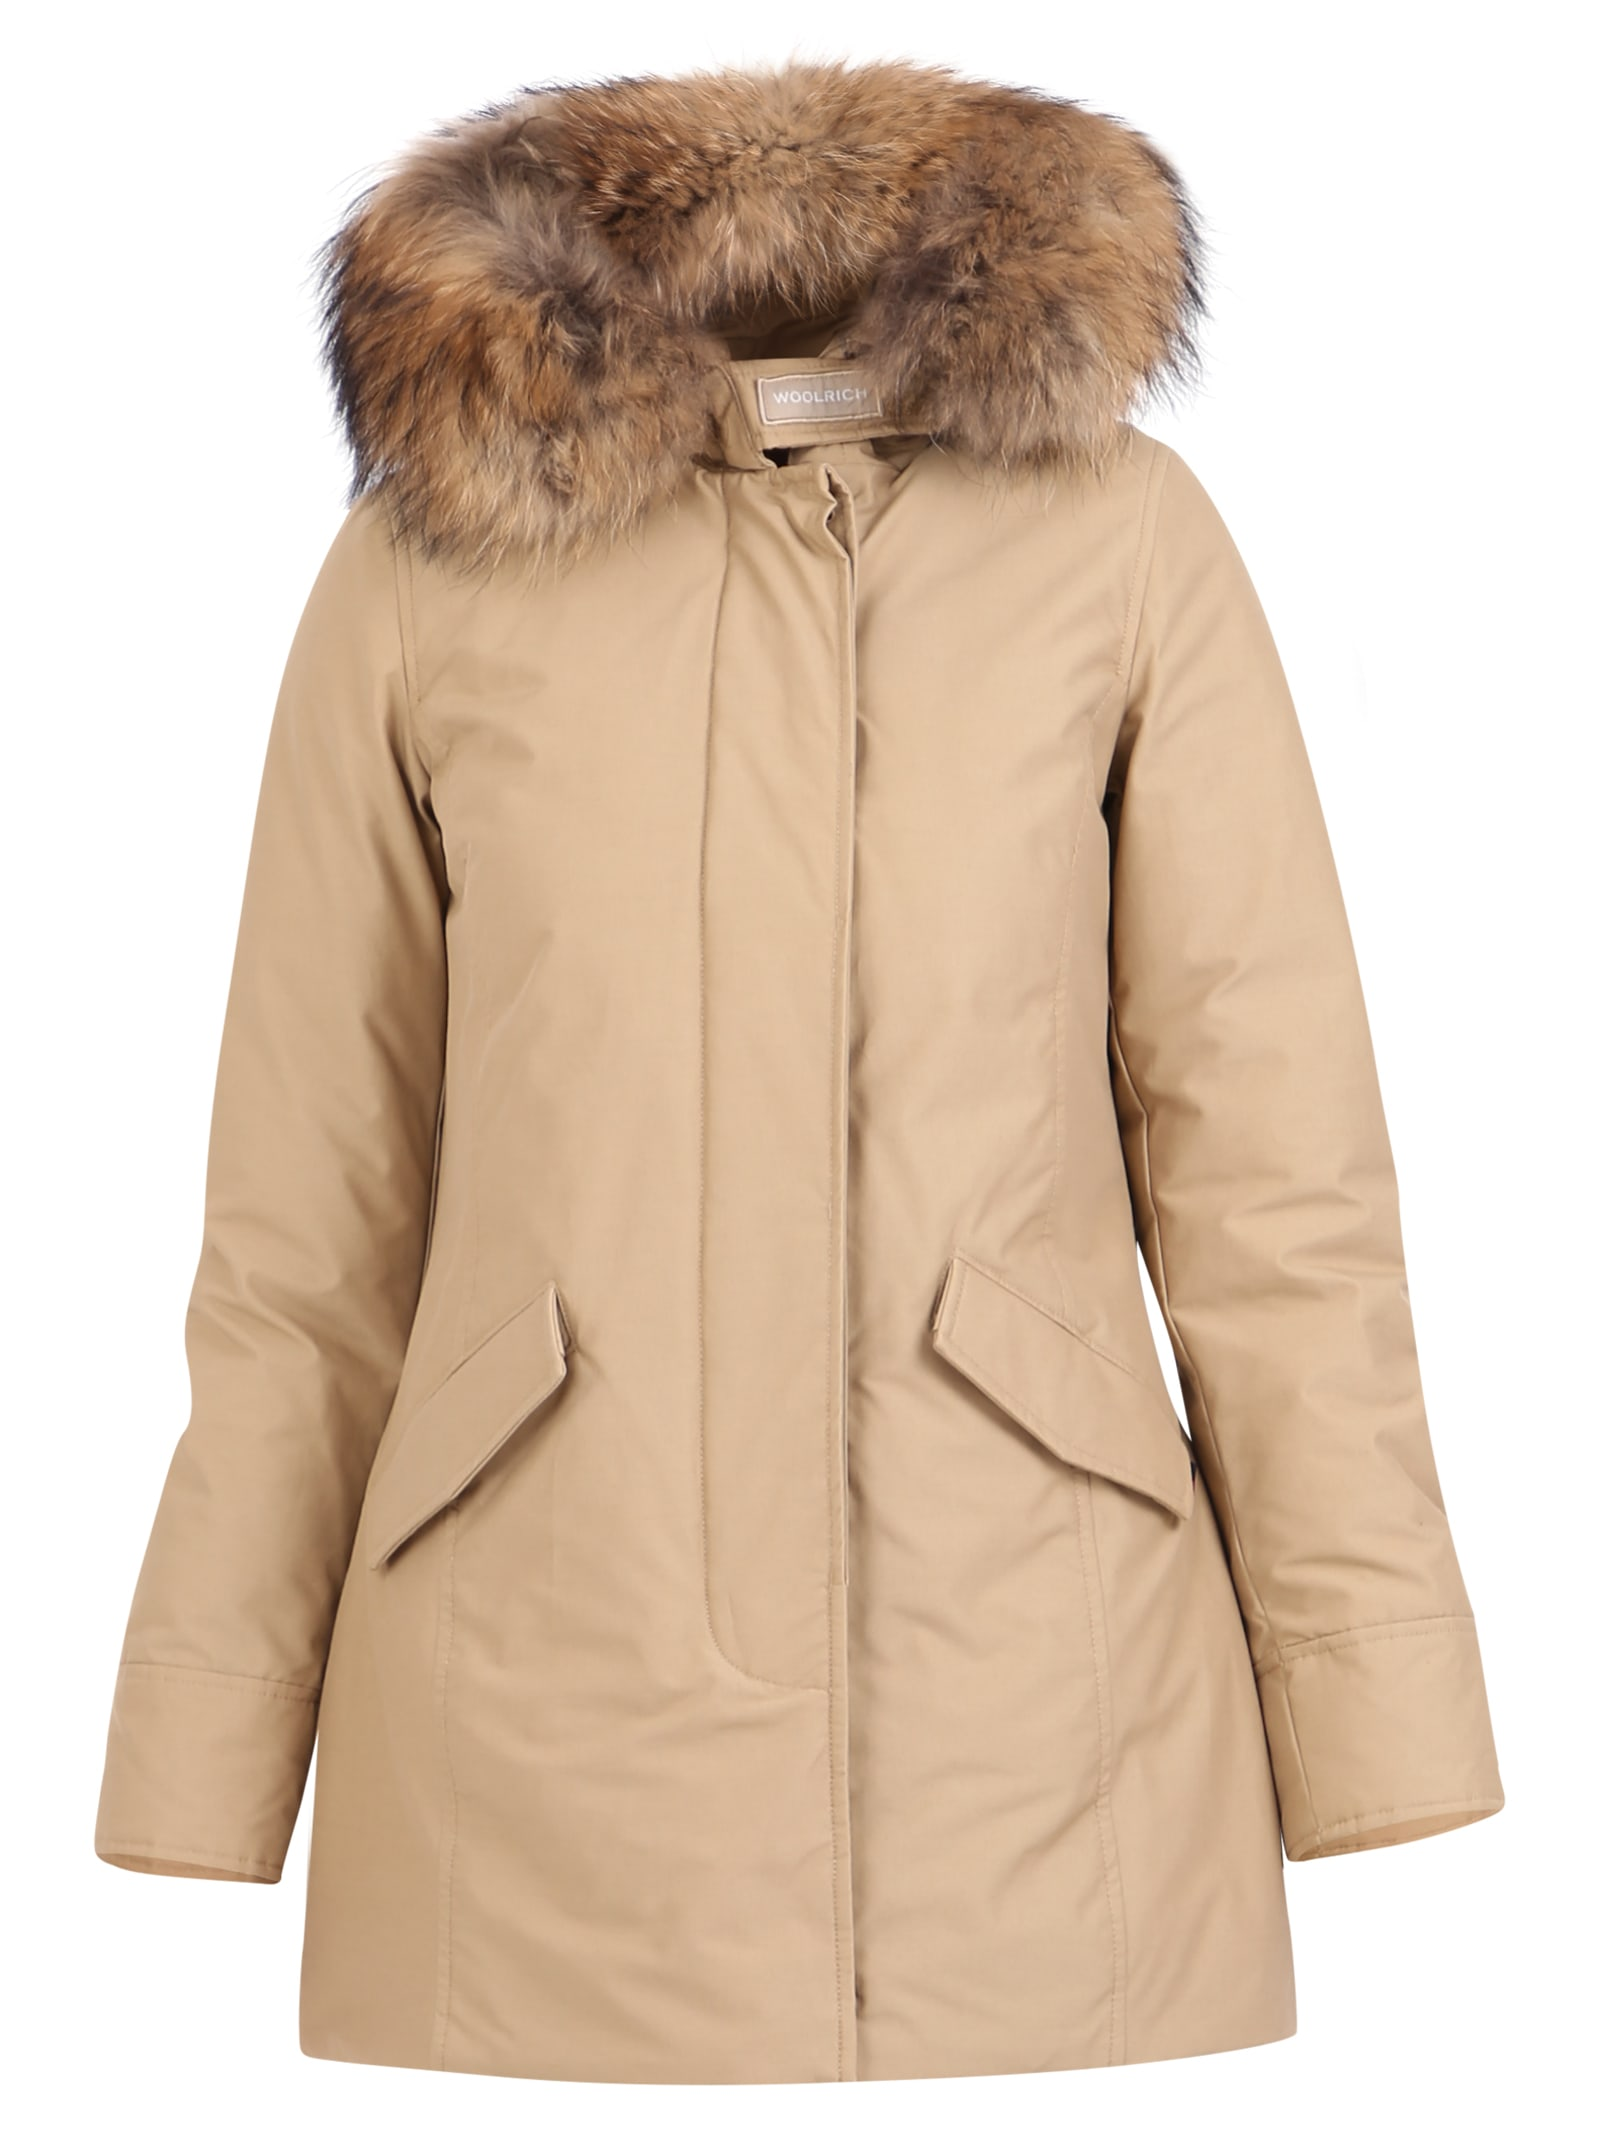 cheapest differently 100% high quality Woolrich Artic Parka Coat